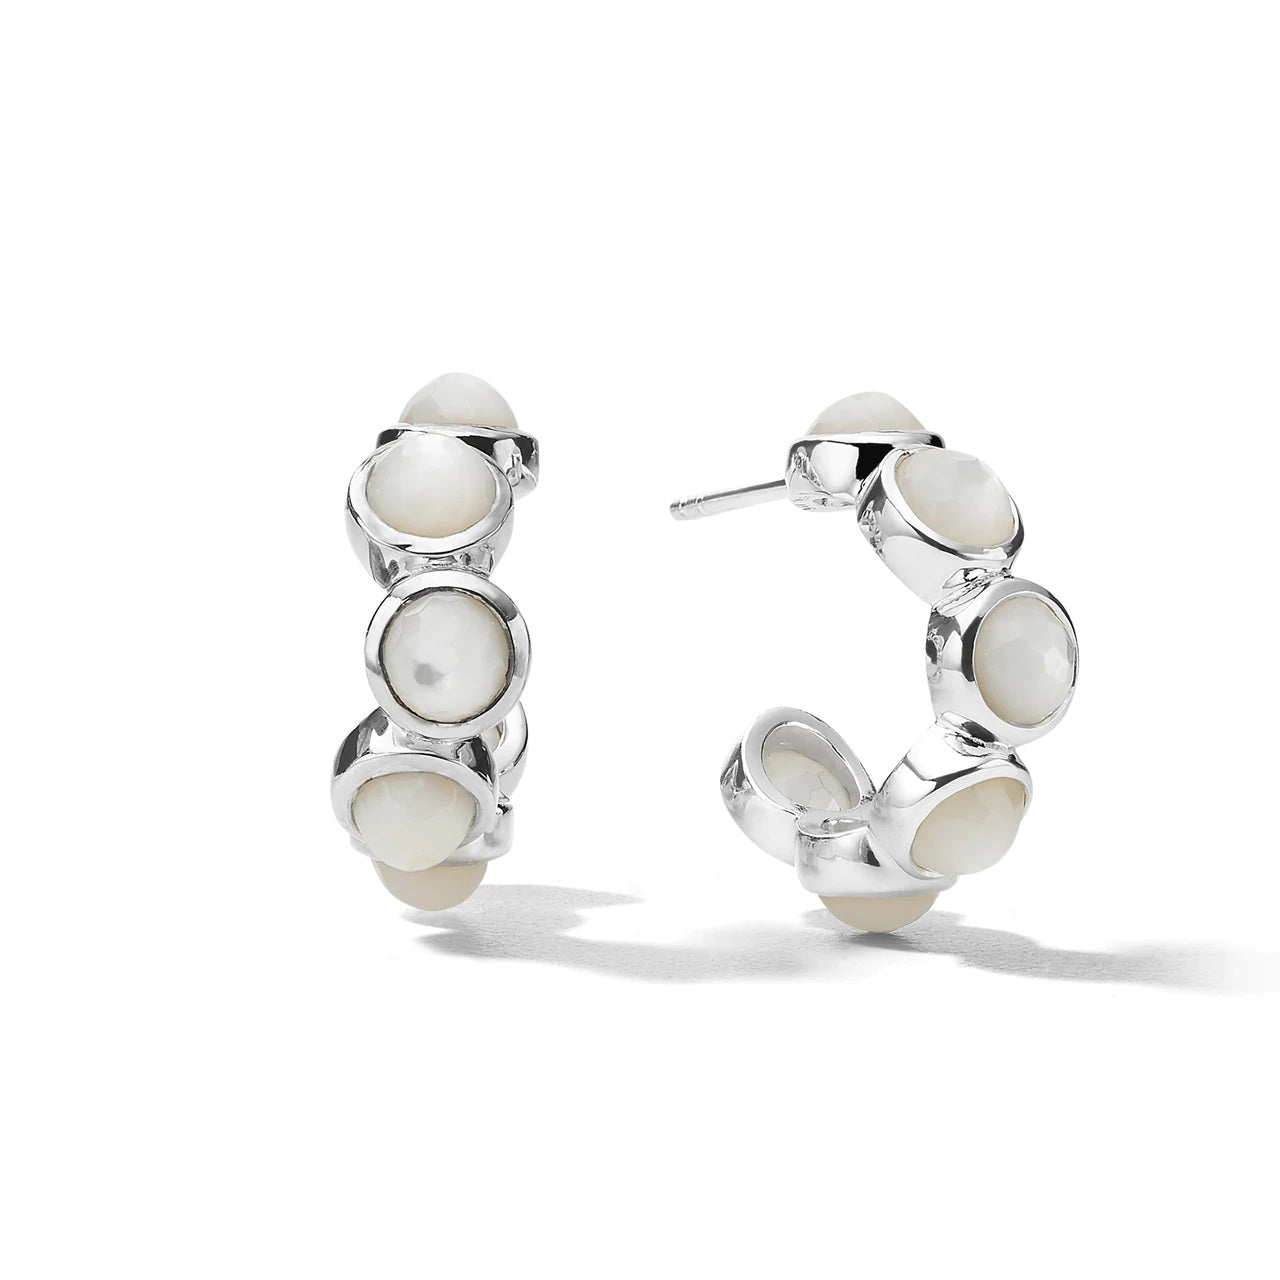 IPPOLITA Lollipop® Sterling Silver Mini Hoop Earrings with Mother-of-Pearl